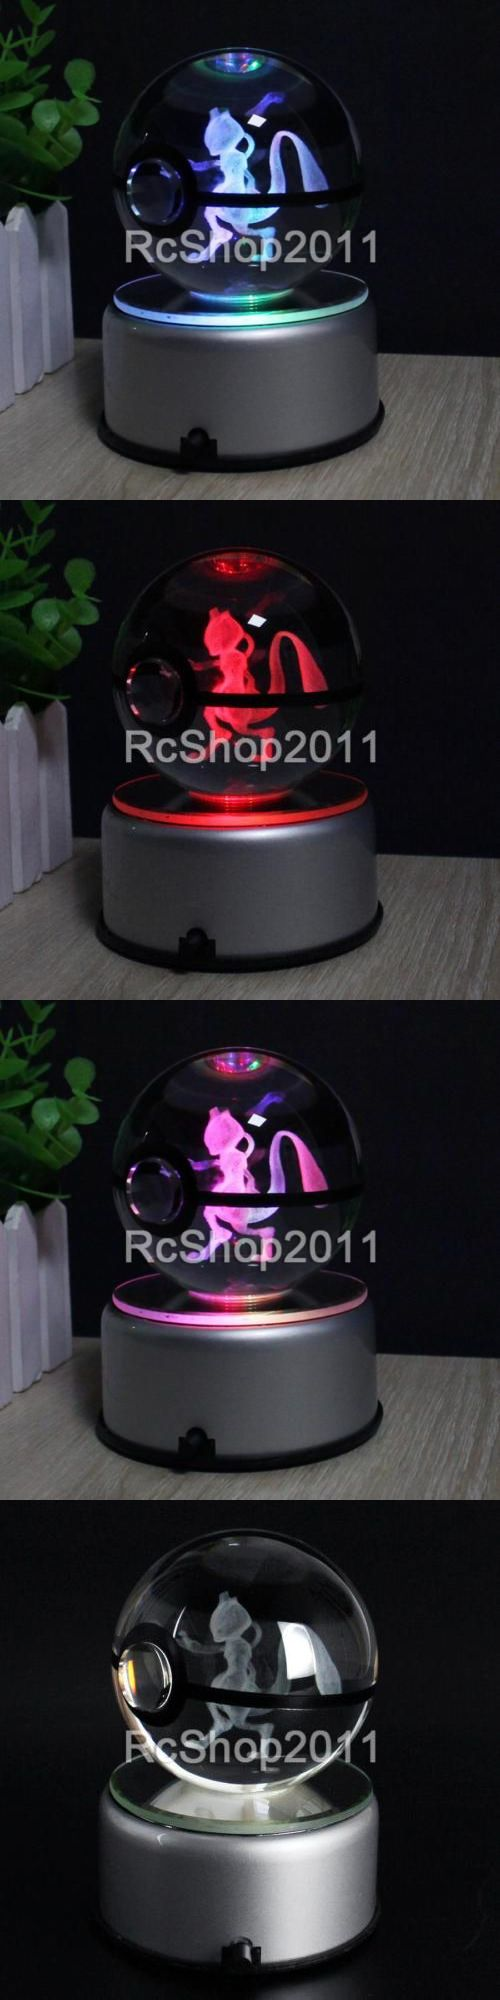 Night Lights 20702: Crystal Ball K9 Glass Pokemon Mewtwo 3D Led Night Light Touch Table Lamp Gift -> BUY IT NOW ONLY: $35.88 on eBay!